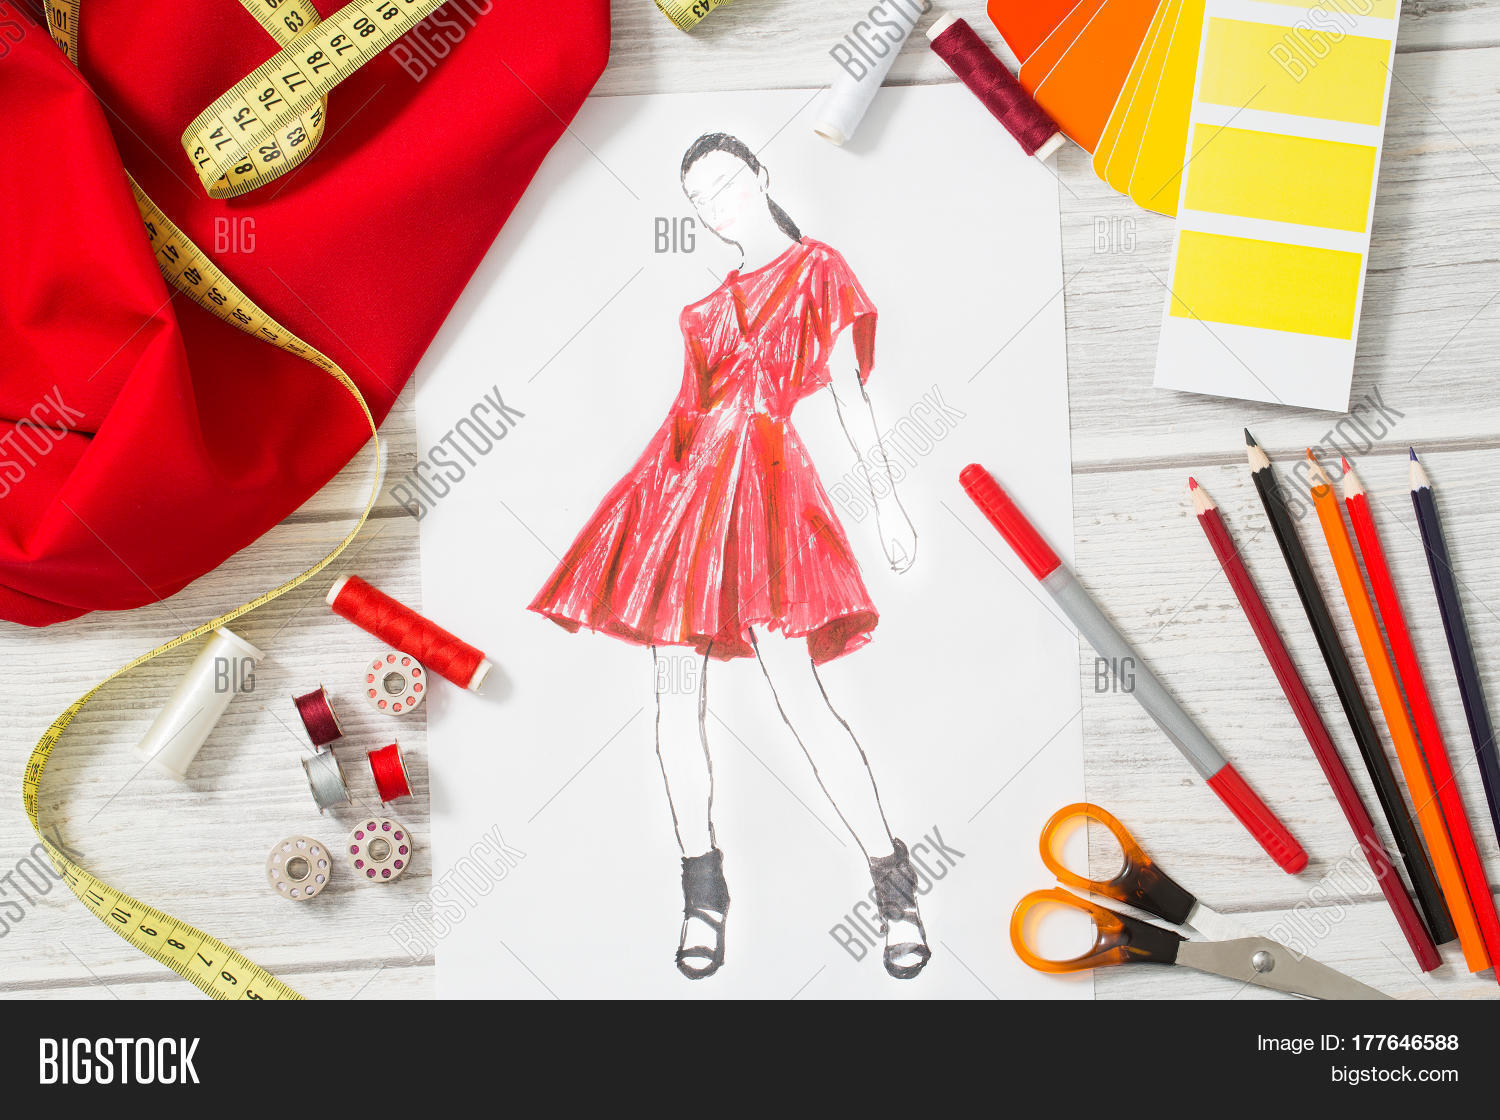 Fashion Designer Studio Equipment Image Photo Bigstock